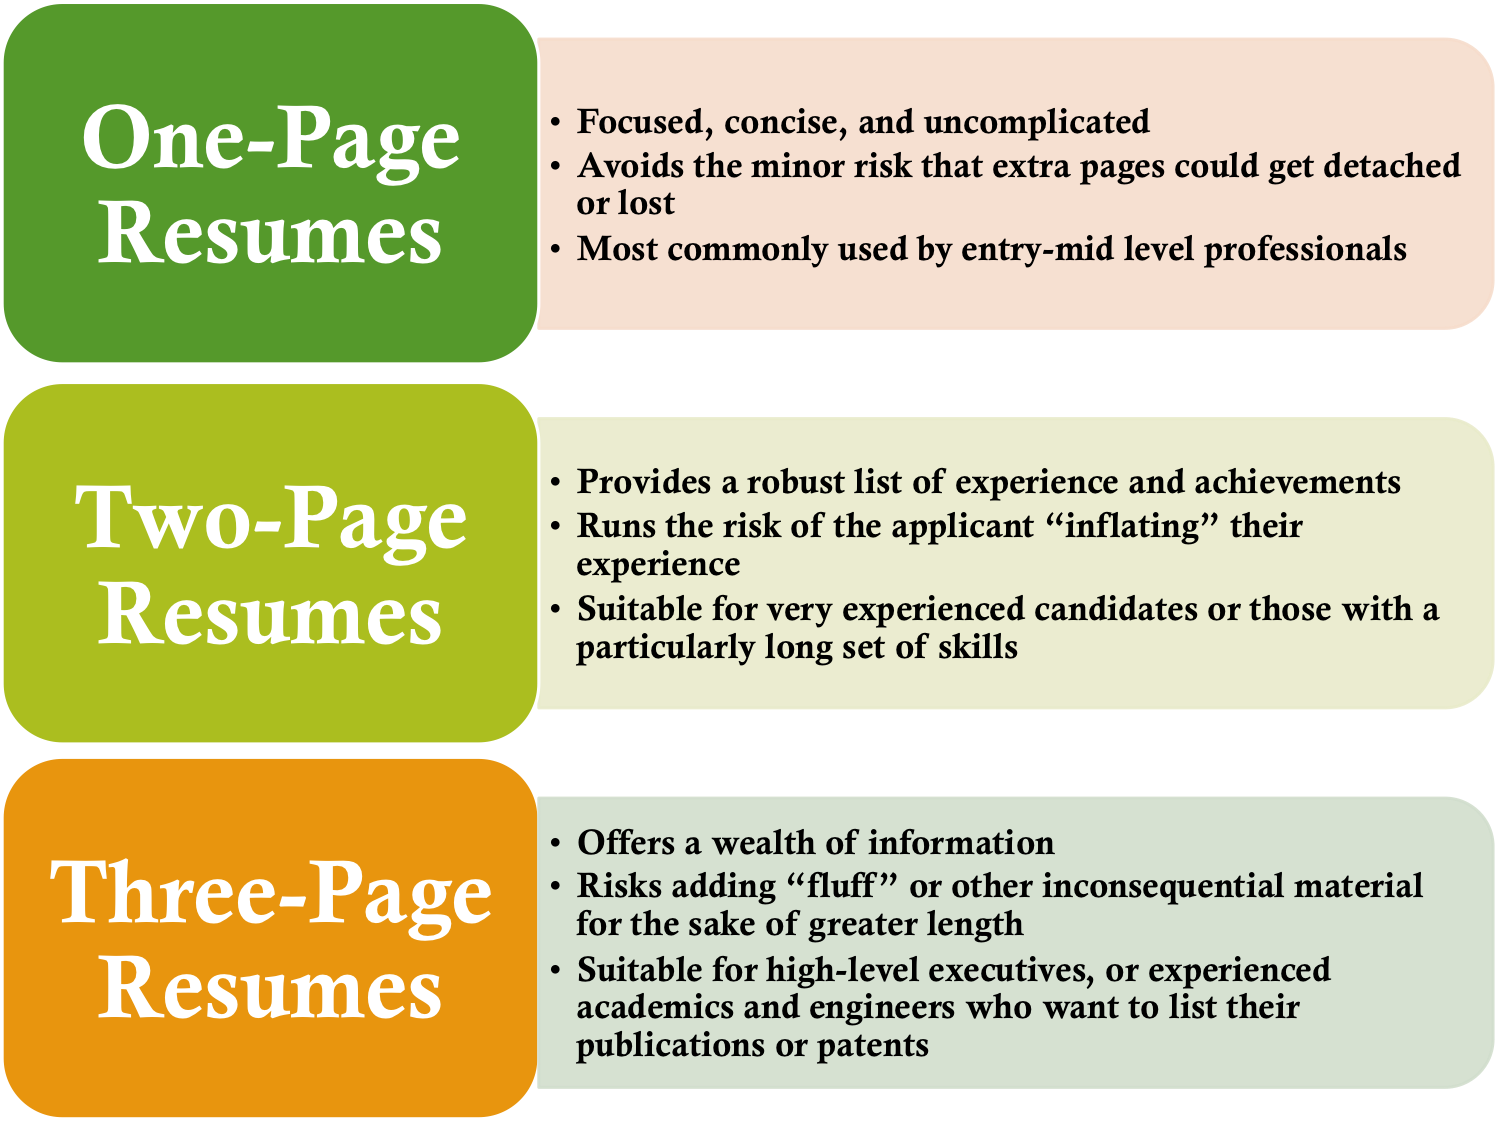 Resume aesthetics font margins and paper guidelines resume genius ideal resume length madrichimfo Image collections